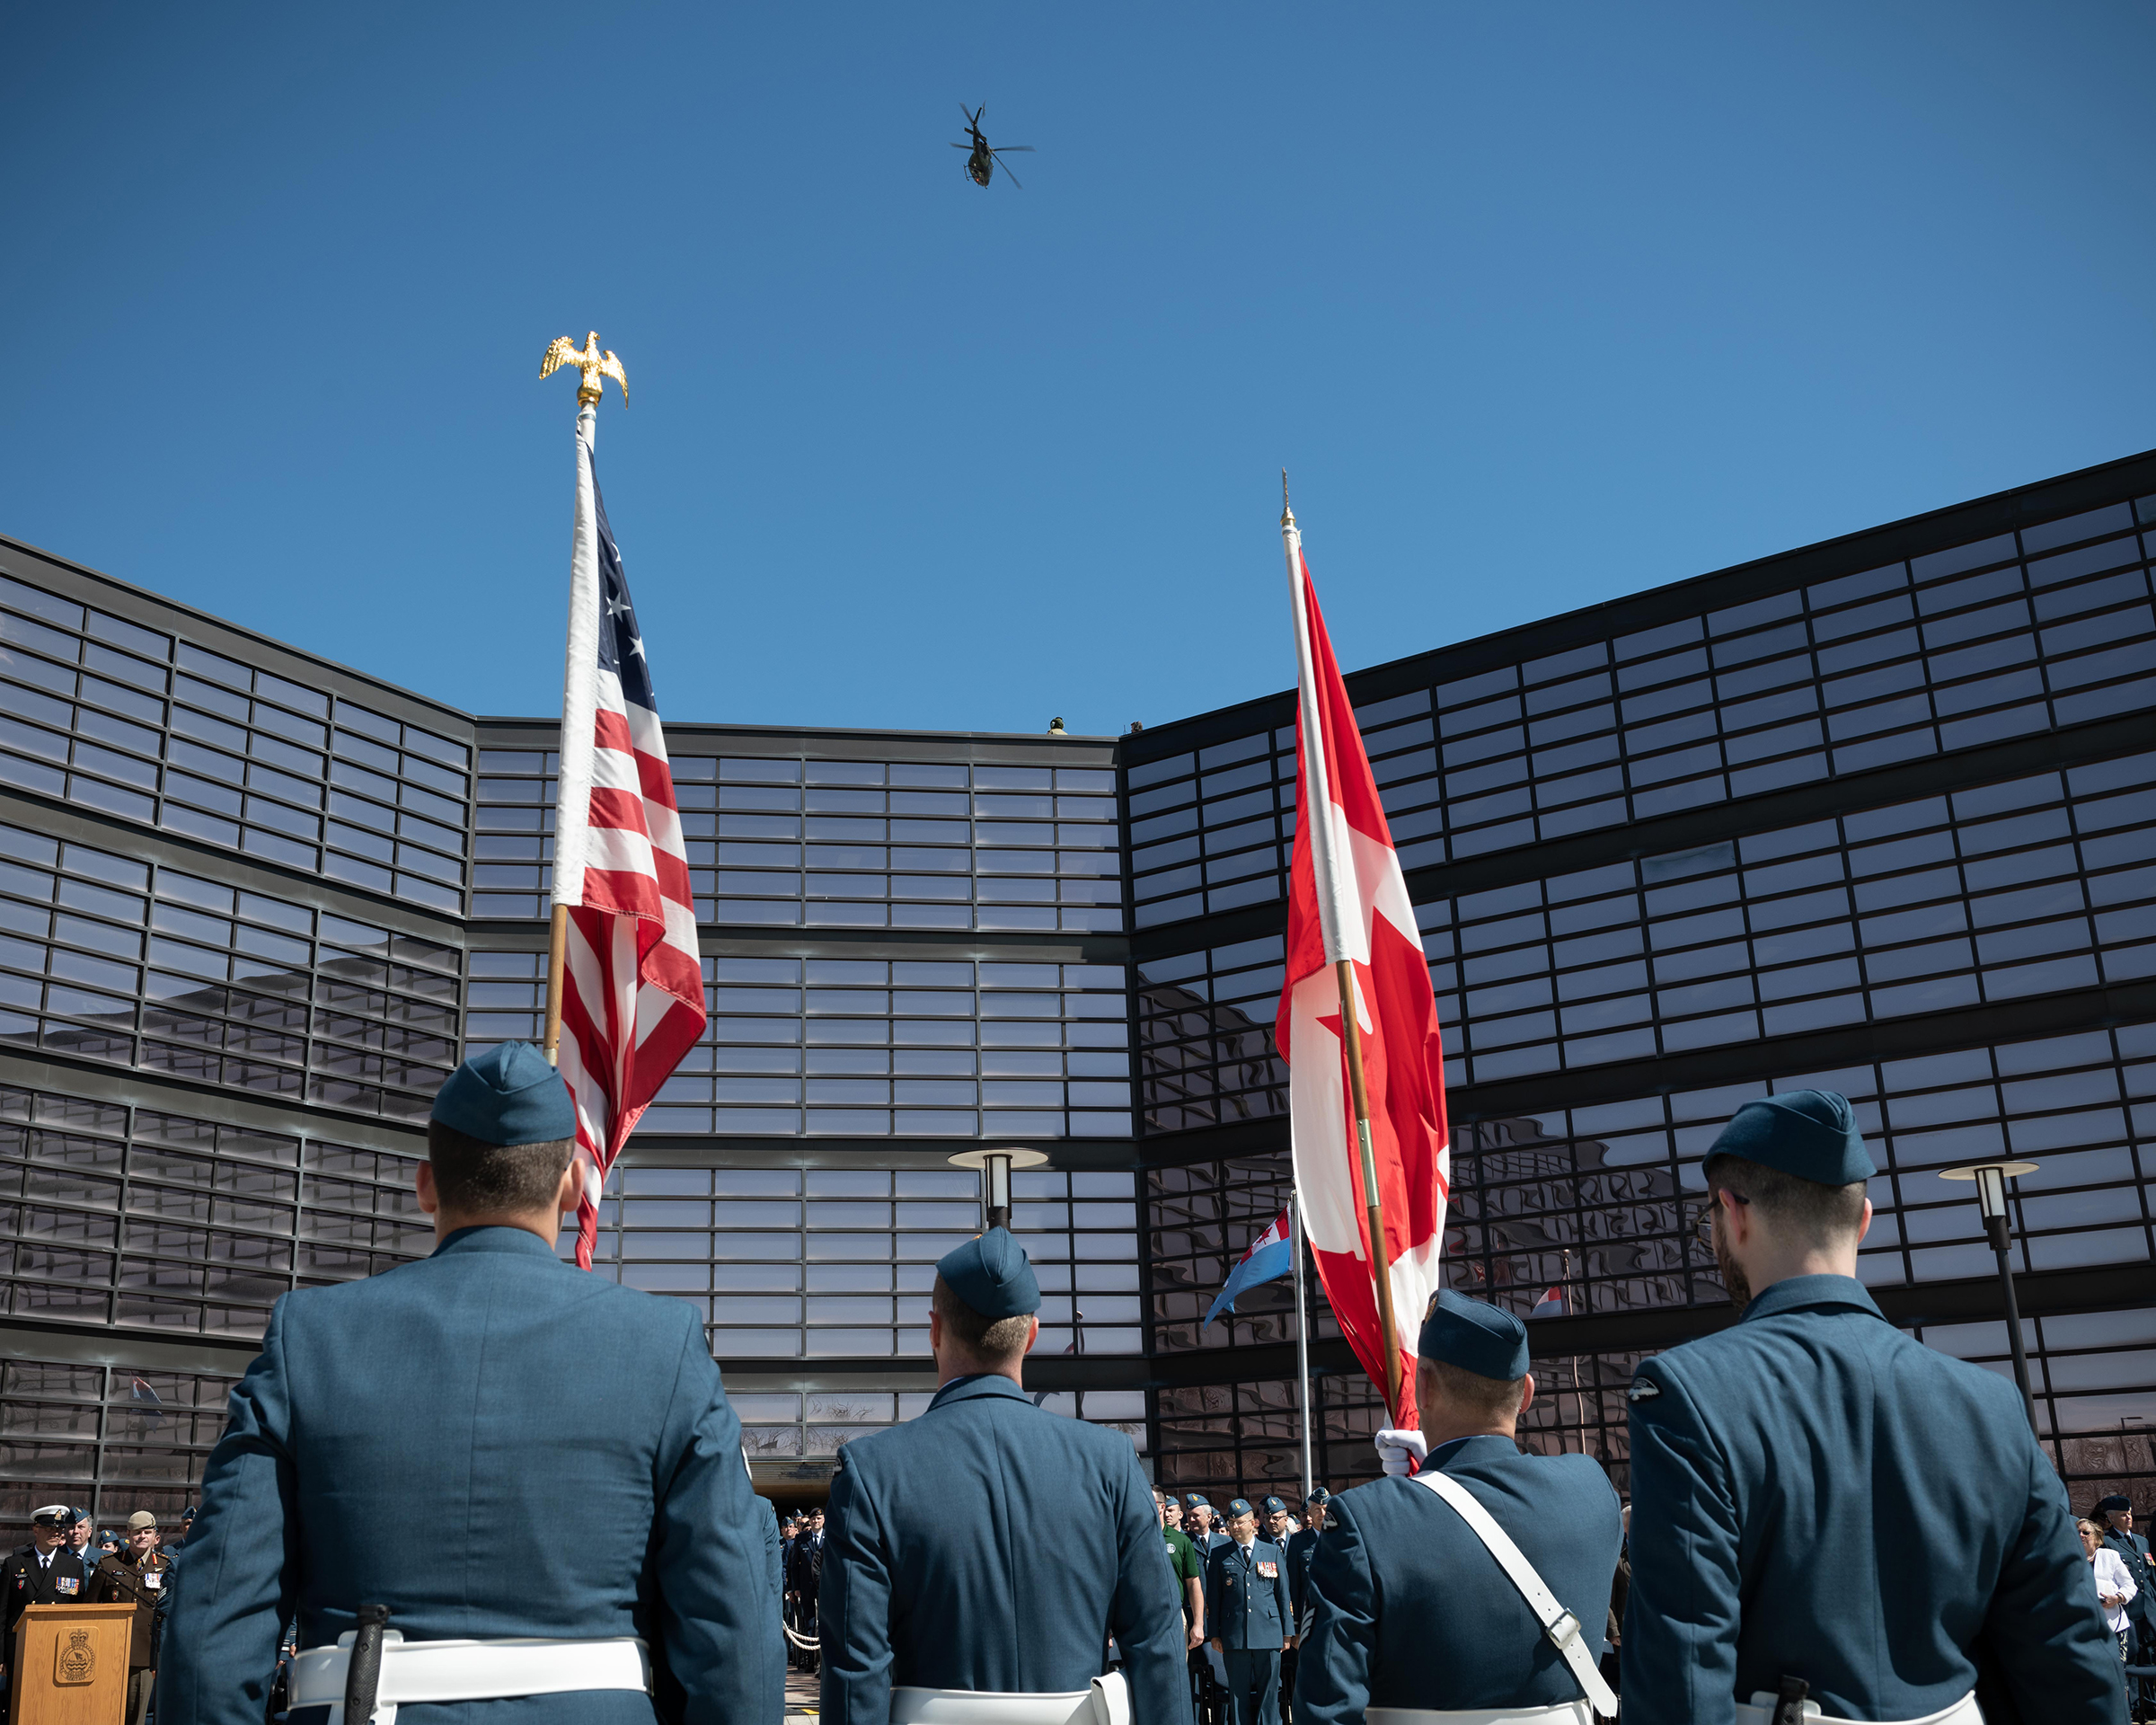 A CH-146 Griffon helicopter from 408 Tactical Helicopter Squadron, based in Edmonton, Alberta, flies over 1 Canadian Air Division headquarters during the change of command ceremony for 1 Canadian Air Division, Canadian NORAD Region and the Joint Force Air Component, held in Winnipeg, Manitoba, on May 16, 2019. PHOTO: Aviator Tanner Musseau-Seaward, WG2019-0213-003